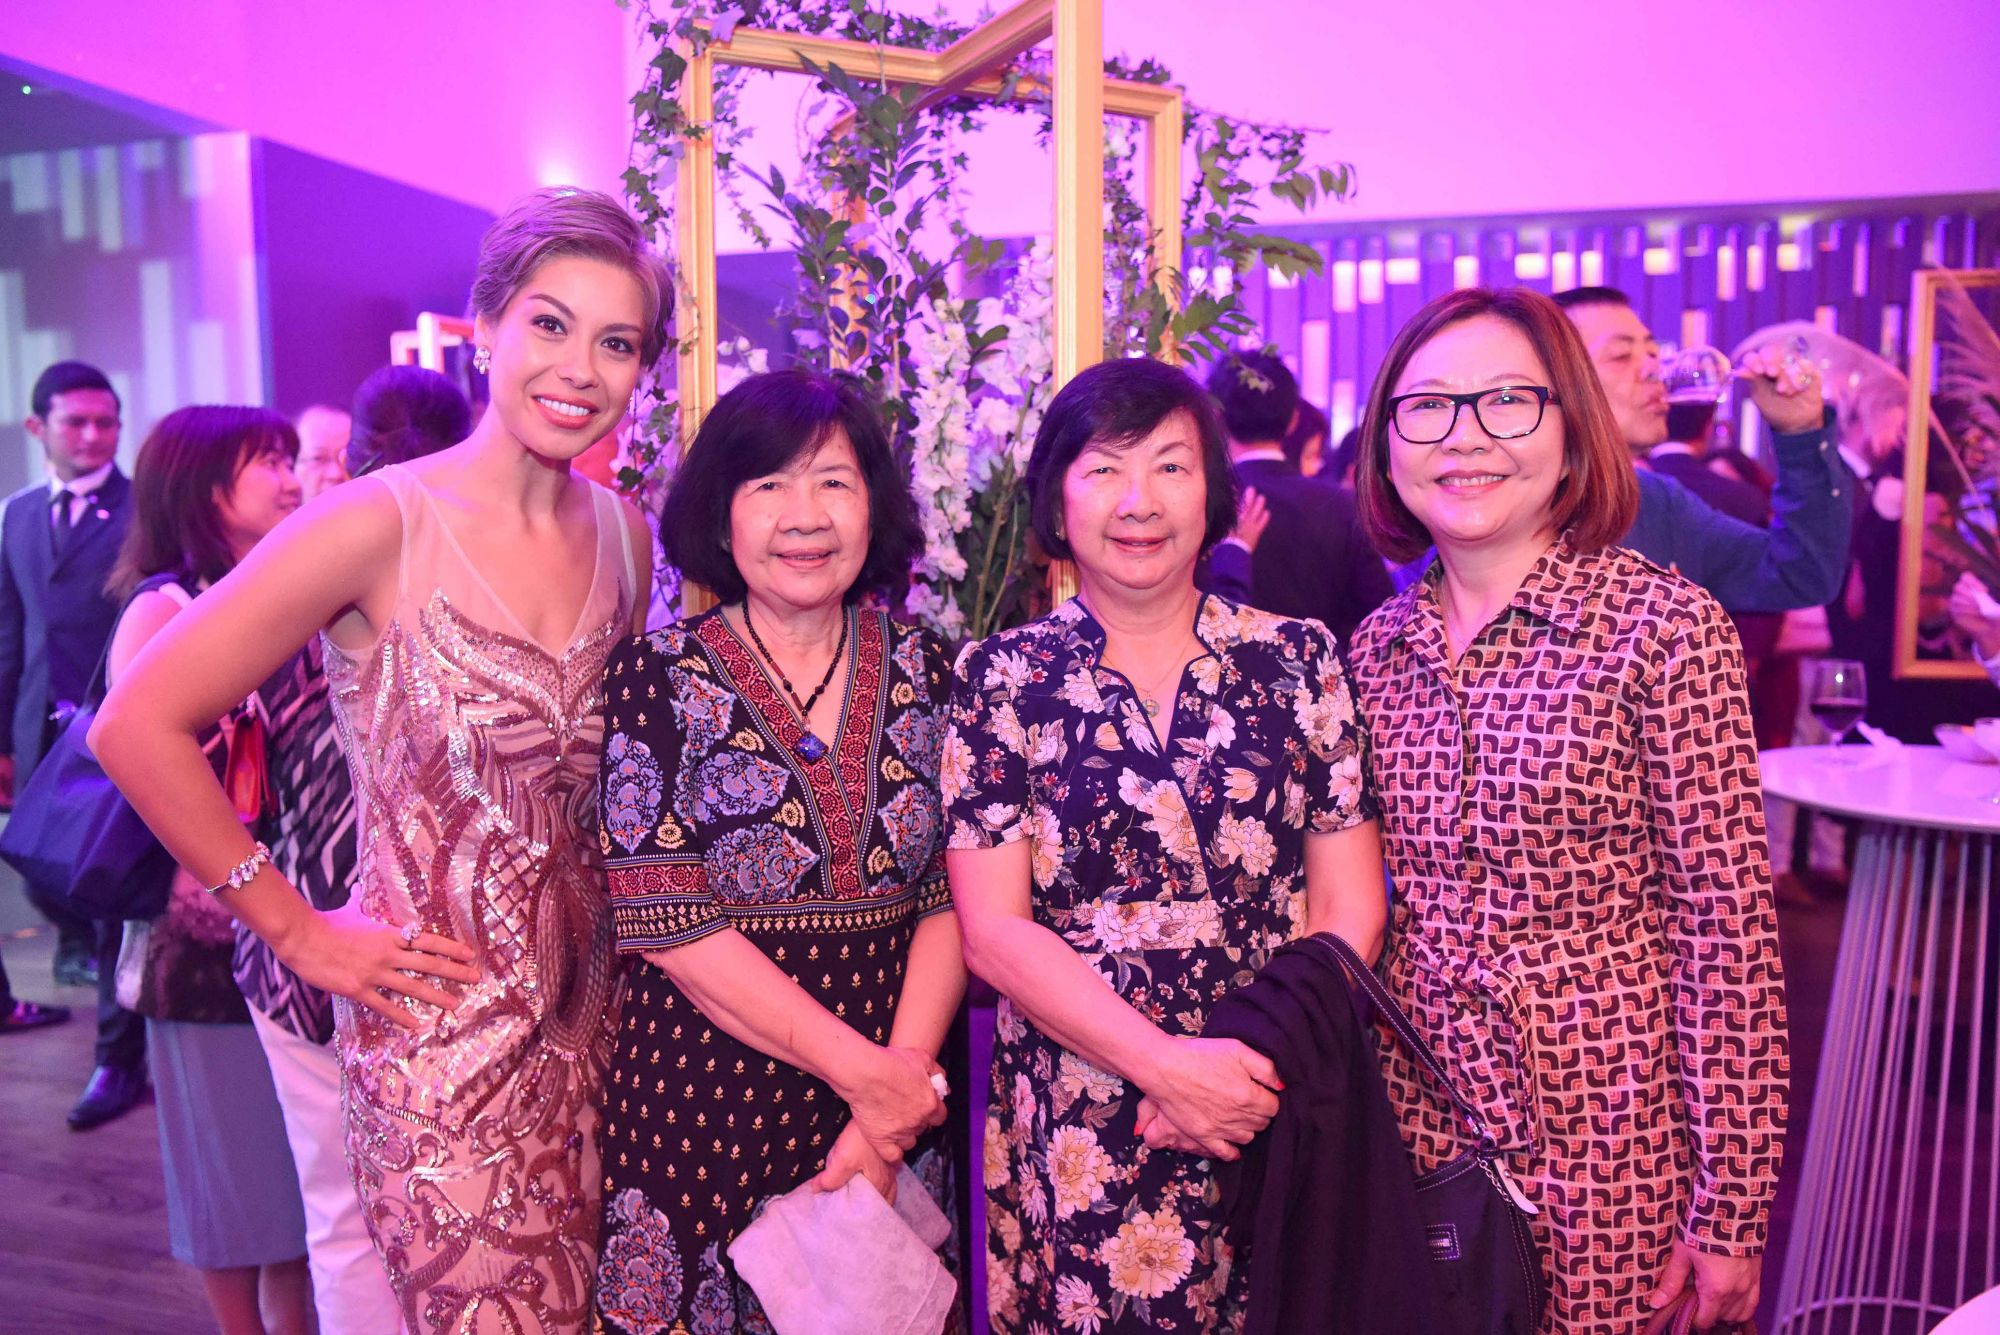 Nikki Muller, Lee Yok Leng, Lee Yoke Ying Maureen, Virginia Yow